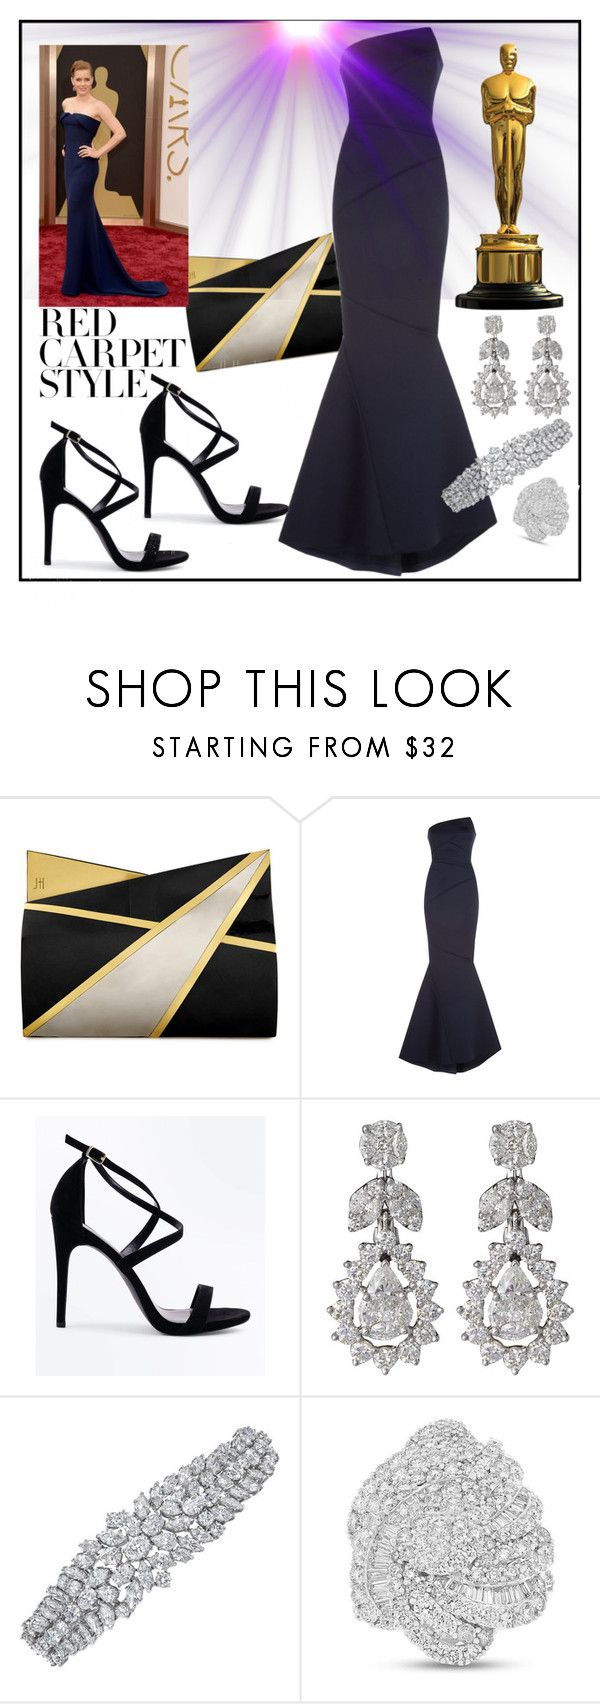 """Red Carpet Queens: Oscar Throwback"" by terryandjim ❤ liked on Polyvore featuring Jill Haber, Rachel Gilbert, New Look, Diamond Scene, redcarpetstyle and OscarsThrowback"